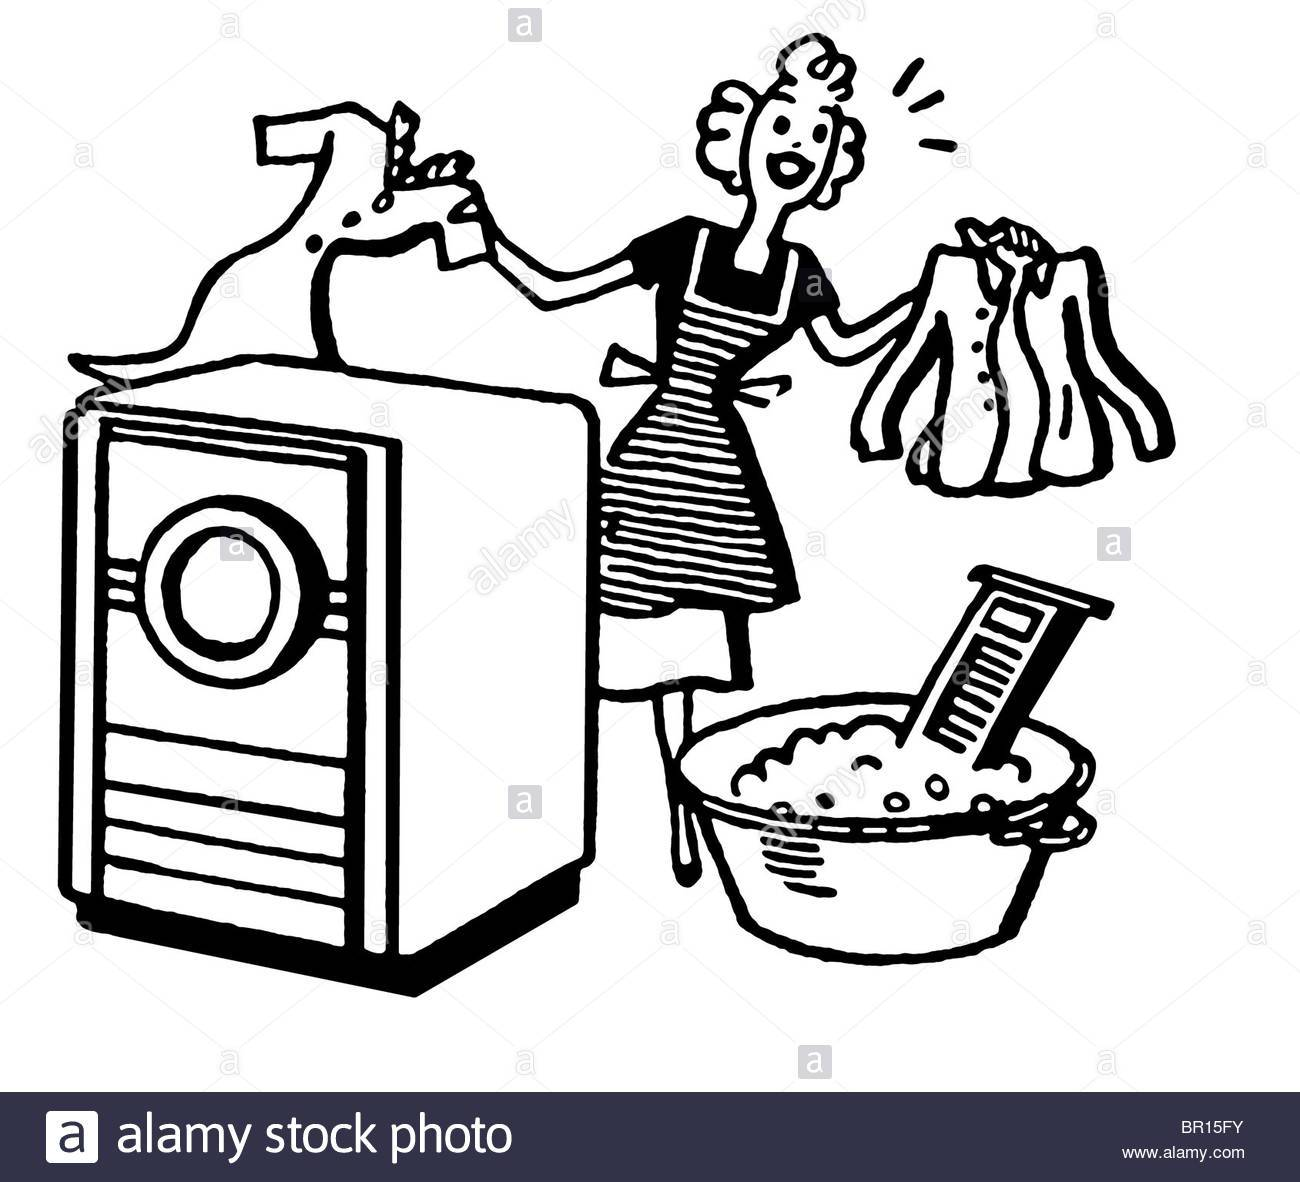 Washing clothes clipart black and white 6 » Clipart Portal.